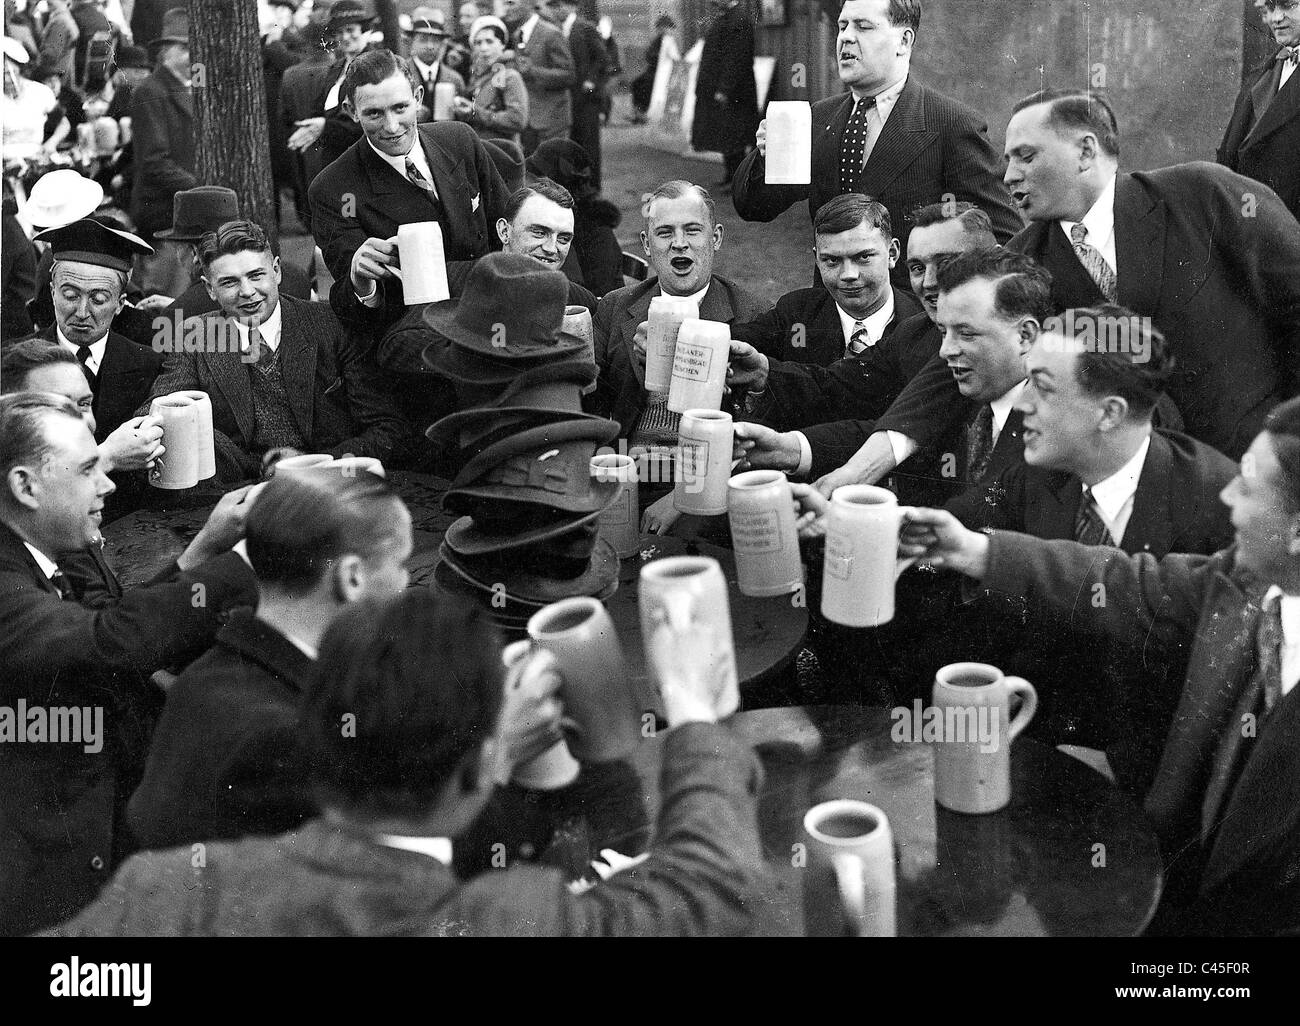 'Salvator Anstich' (tapping of the first dark beer) at Nockherberg in Munch (1935) - Stock Image